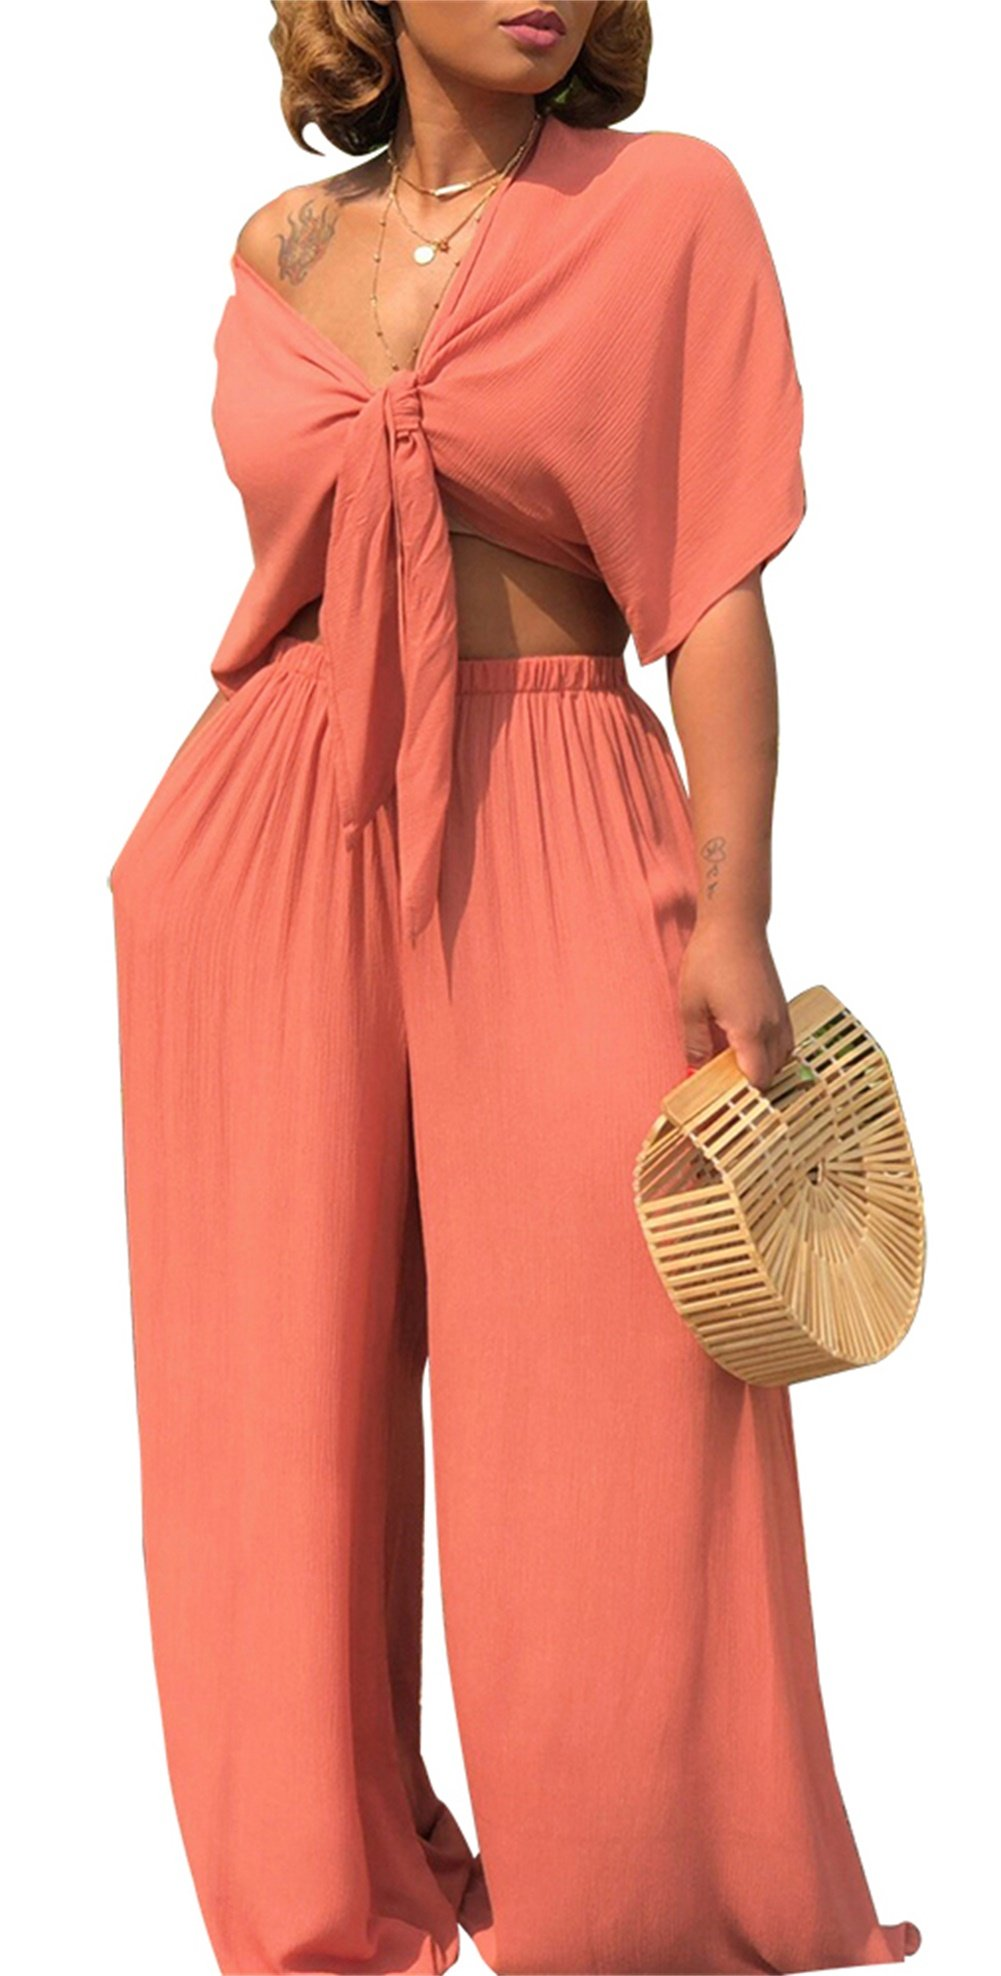 Nrthye Women's Summer Front Tie Tanktop & Wide Leg Long Pants Jumpsuit Solid 2 Piece Outfits